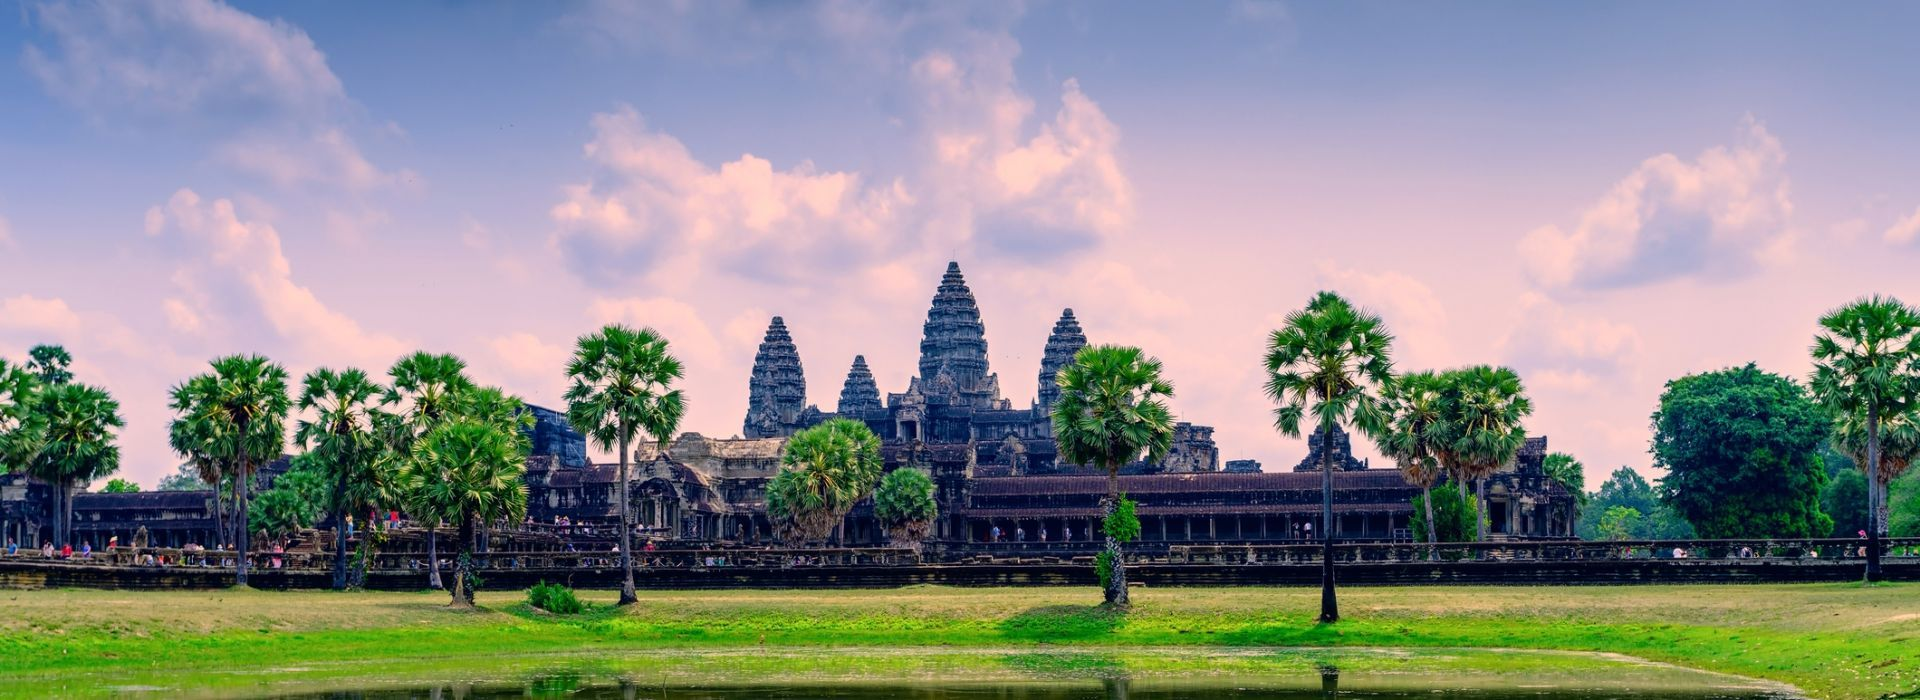 Cultural, religious and historic sites Tours in Phnom Penh